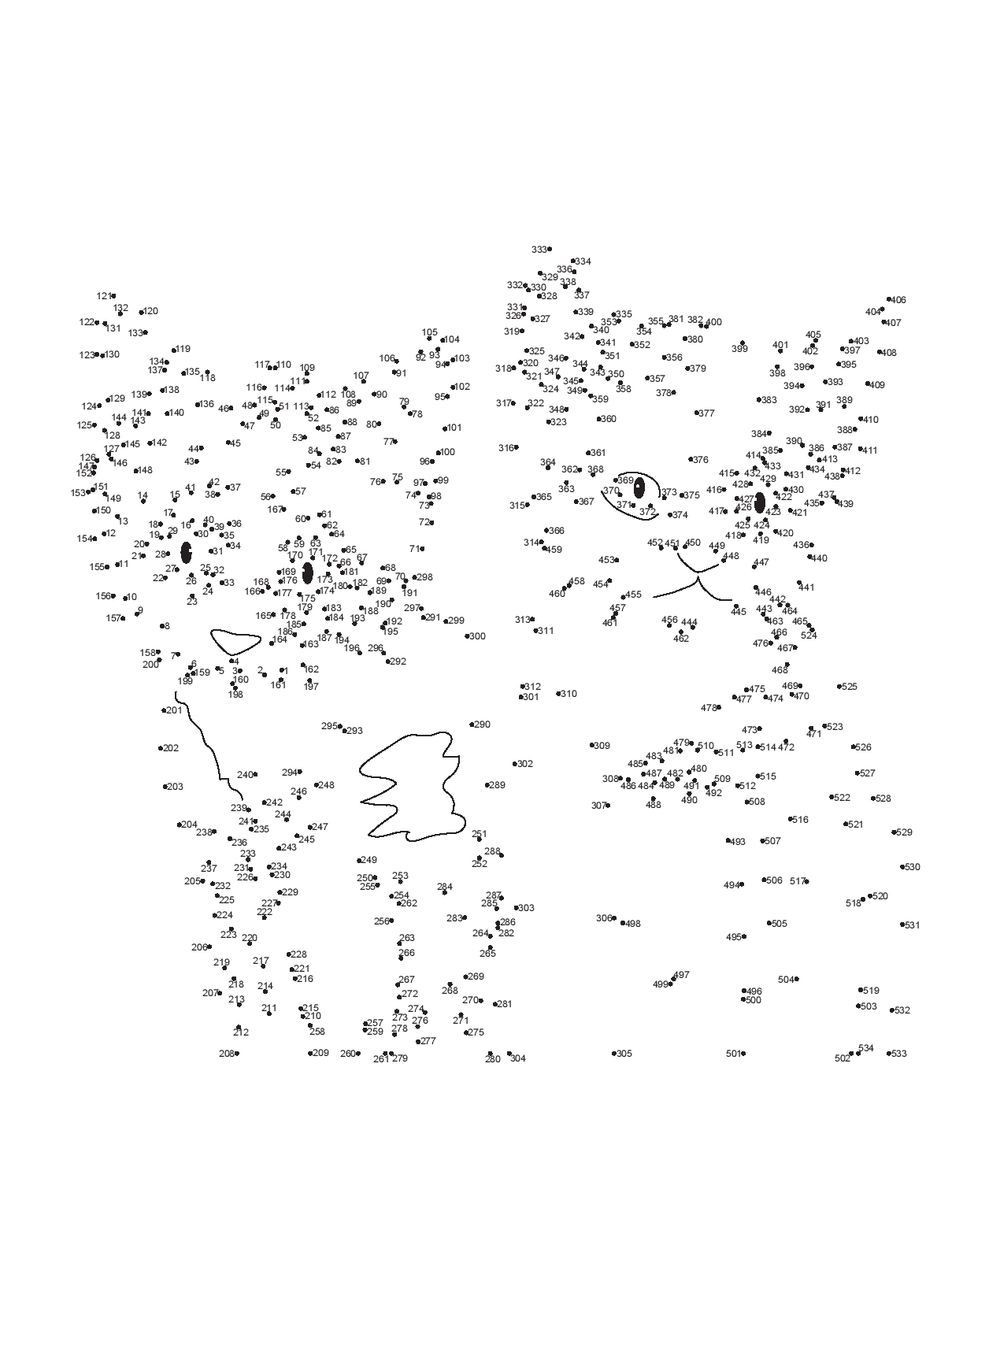 printable dot to dots to 1000 1000 connect the dots worksheets connect the dots 1000 dots to printable dot to